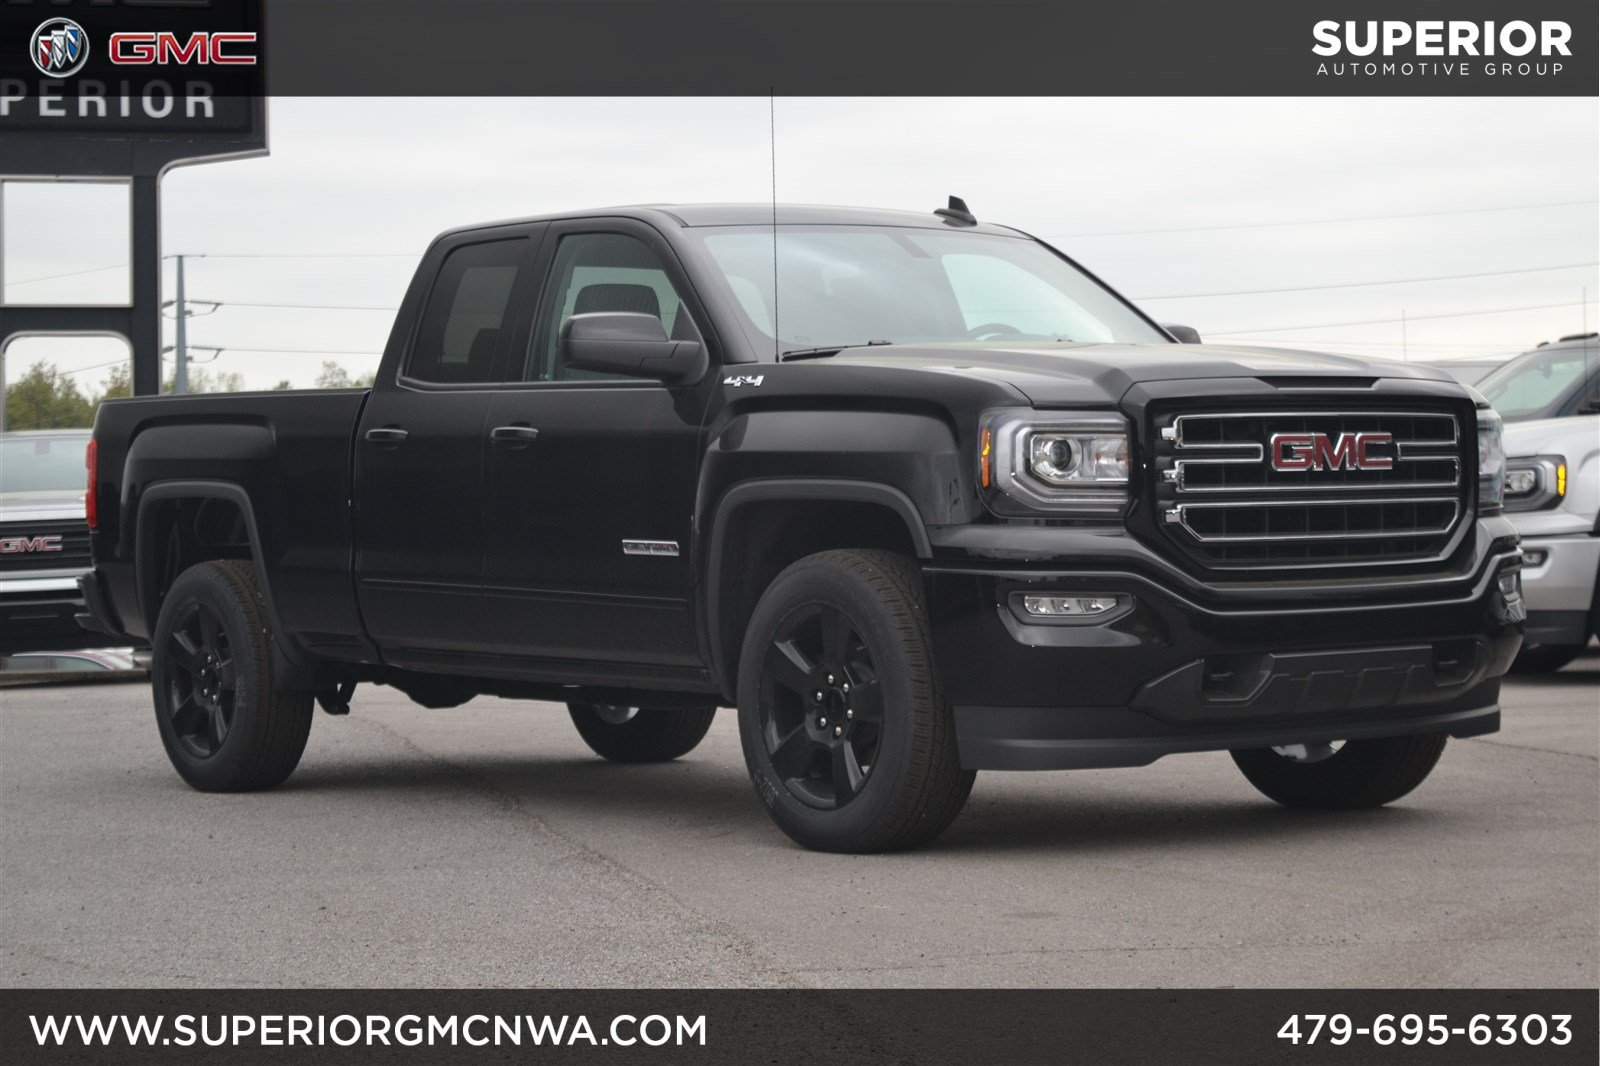 New 2018 GMC Sierra 1500 Elevation 4WD Crew Cab